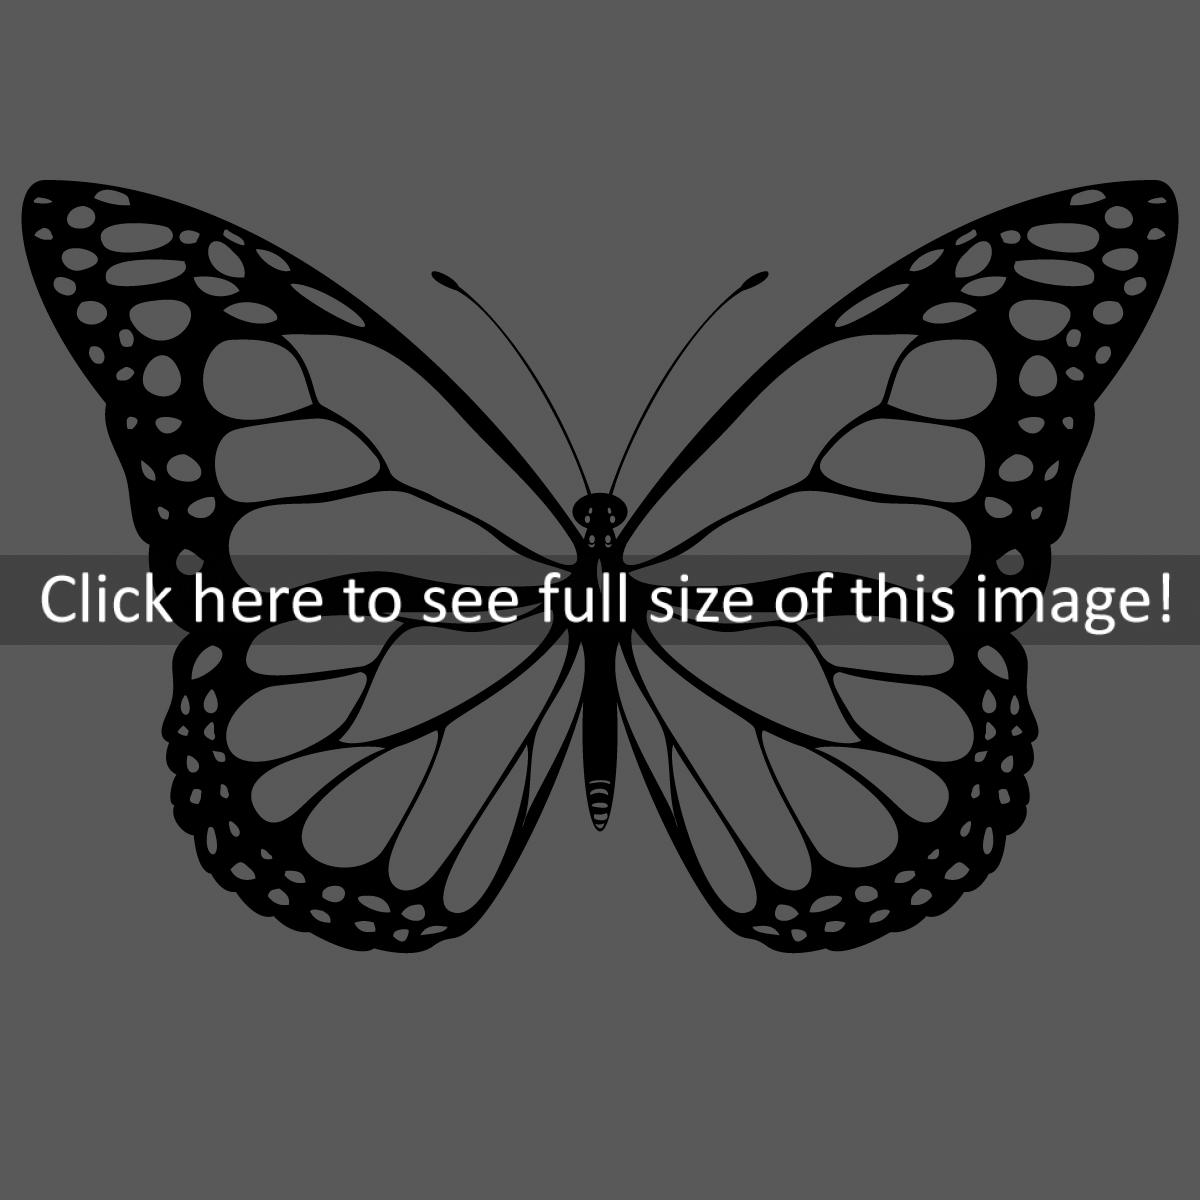 butterfly%20clipart%20black%20and%20white